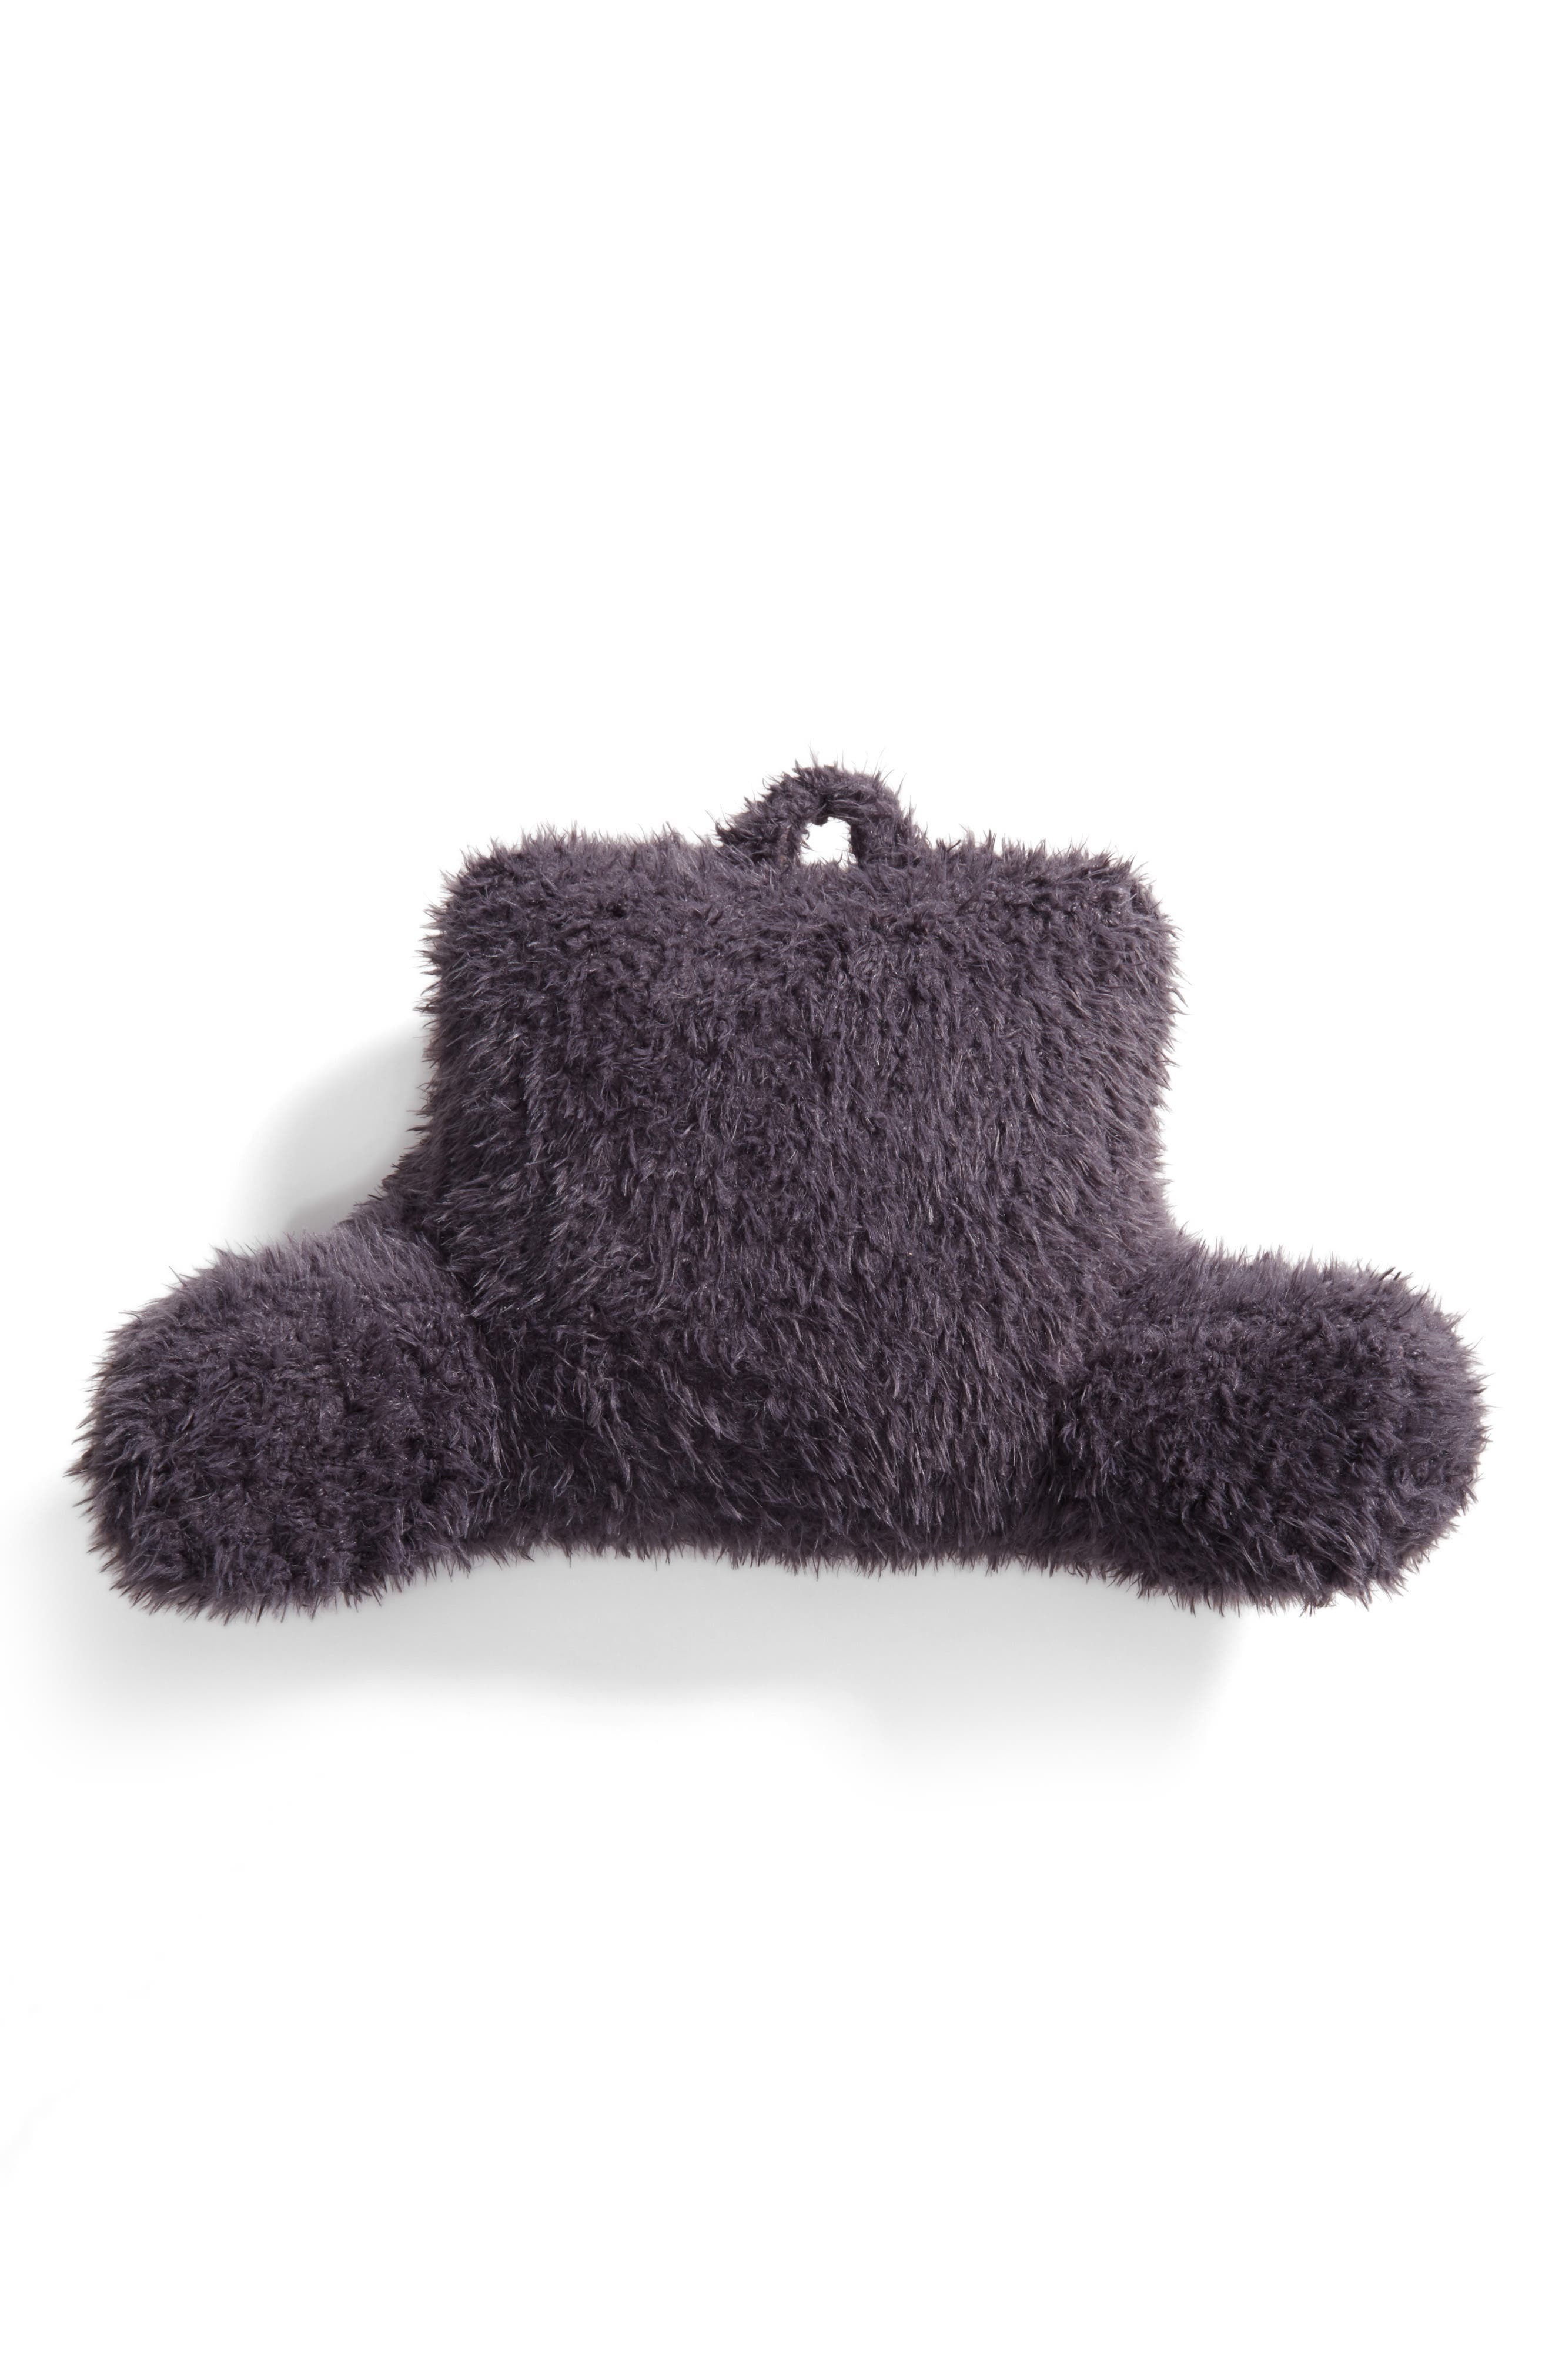 Alternate Image 1 Selected - Nordstrom at Home Shaggy Faux Fur Backrest Pillow